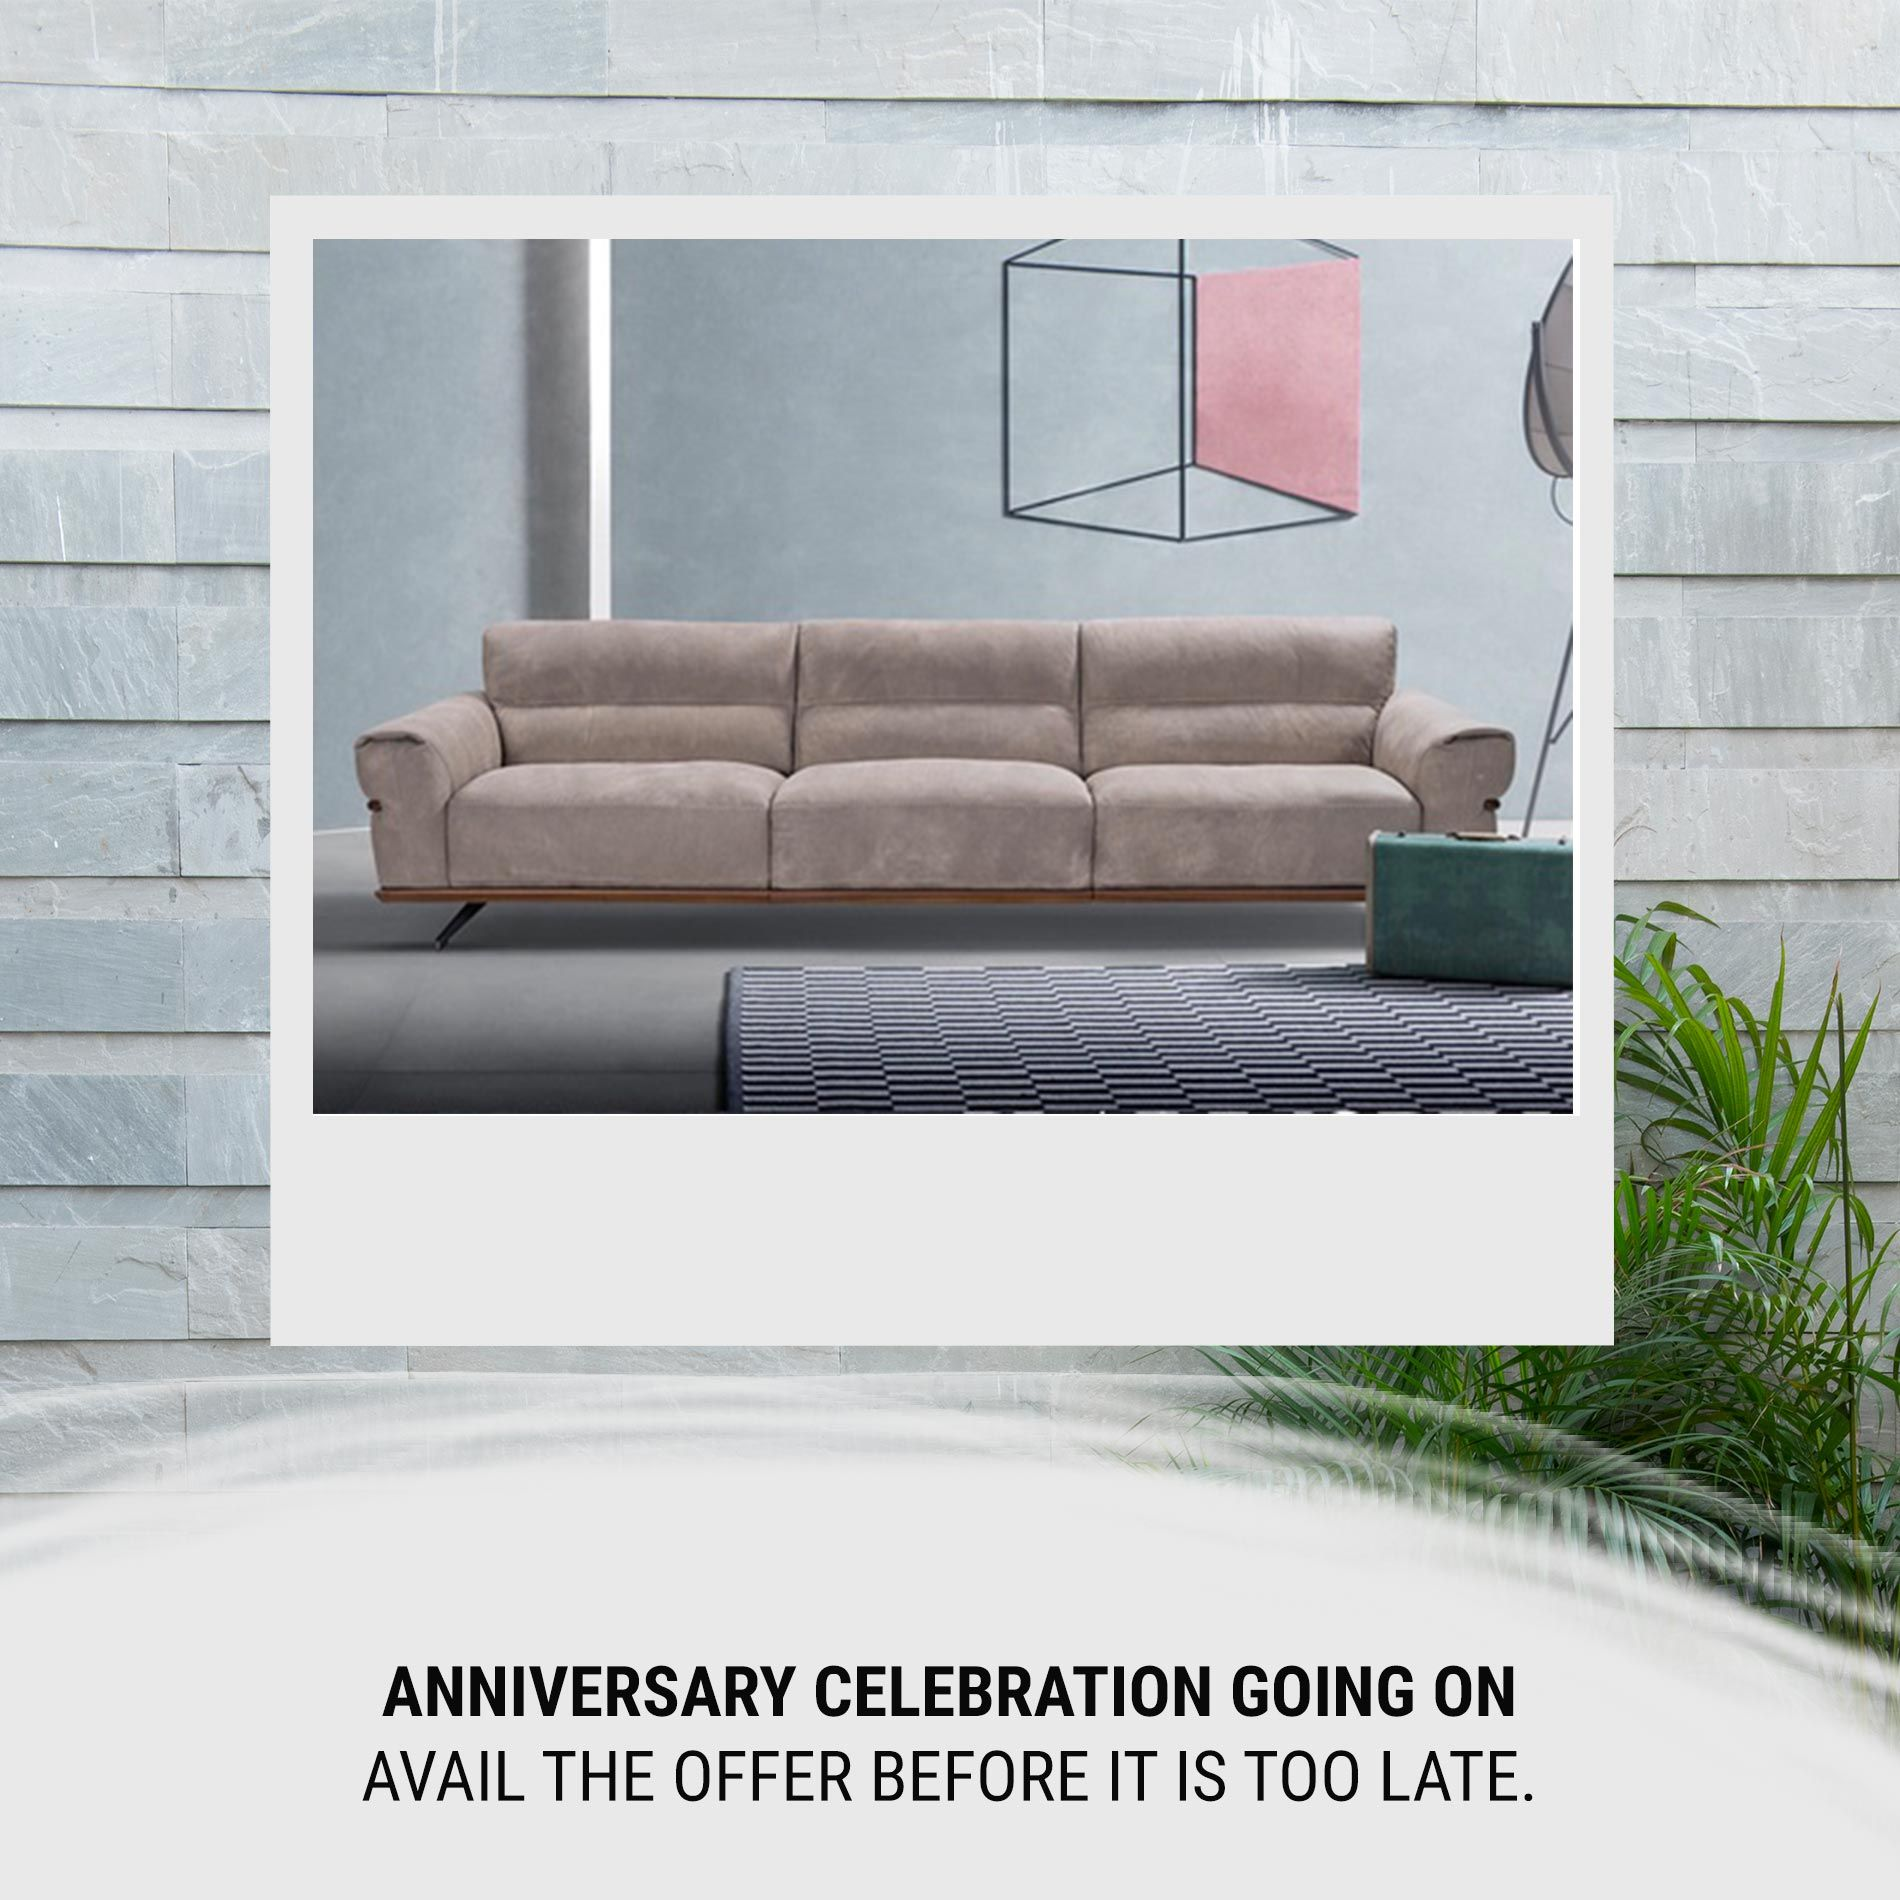 3 Cheers To Idus Furniture For Our 14th Anniversary We Are Giving Away Incredible And Unimaginable Offers Follow Us Keep Tuned The Upcoming Deals